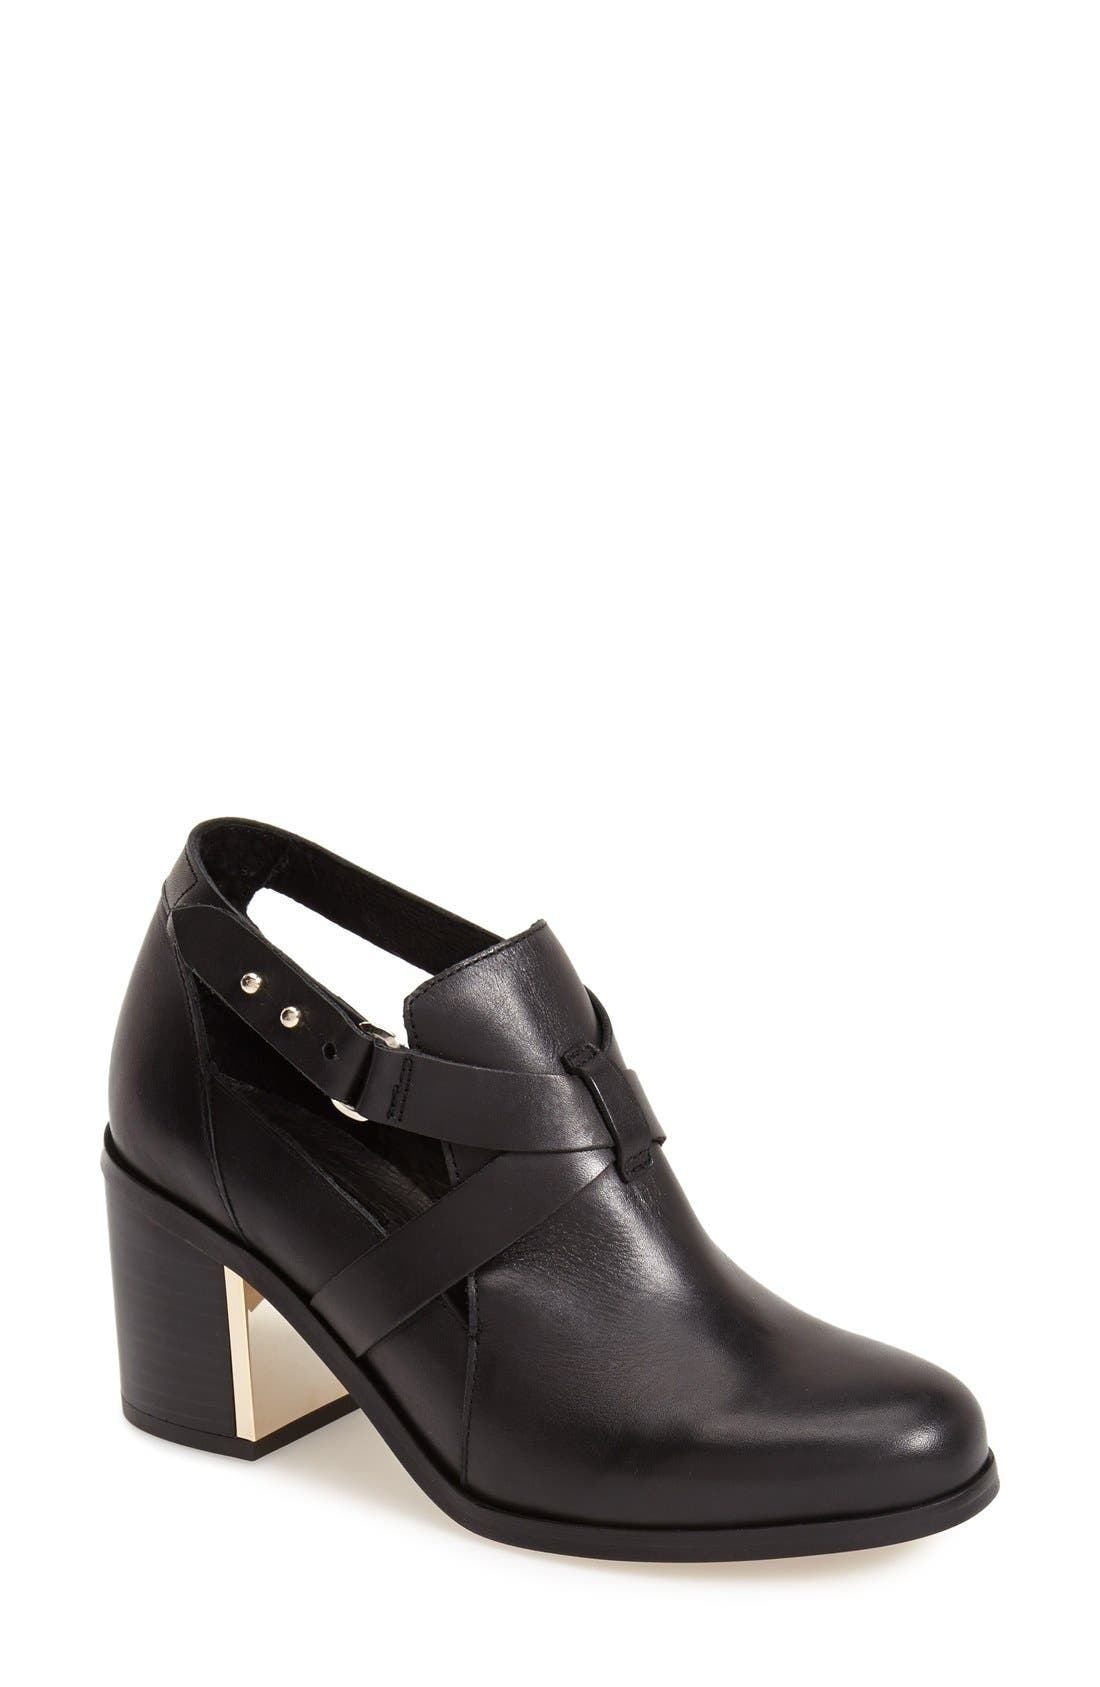 Main Image - Topshop 'Mirror' Crisscross Strap Leather Ankle Boot (Women)